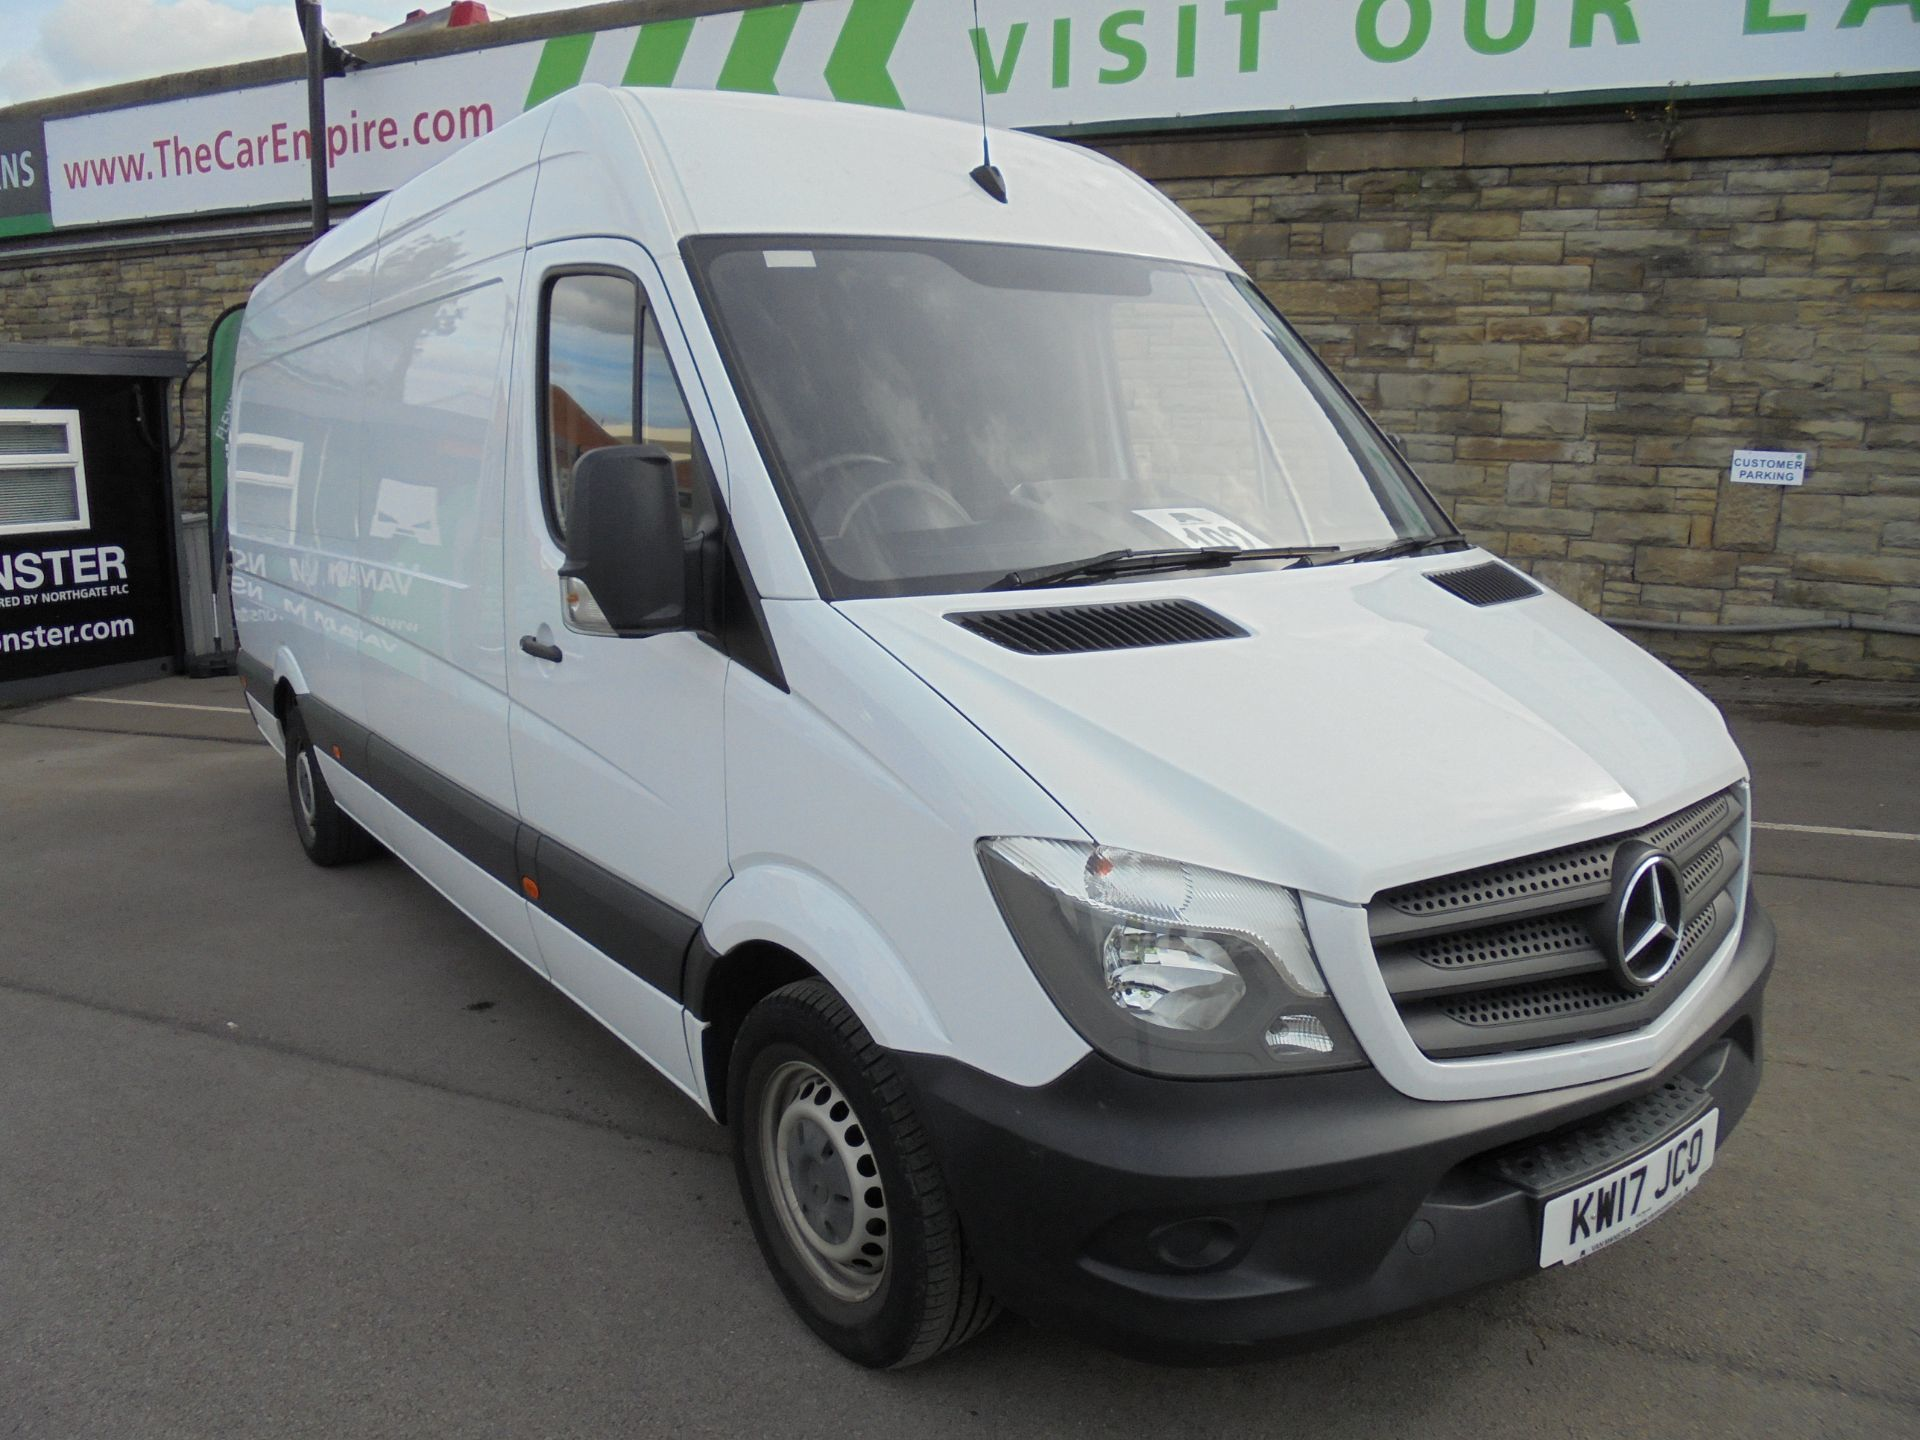 2017 Mercedes-Benz Sprinter 3.5T High Roof Van LWB (KW17JCO) Thumbnail 1